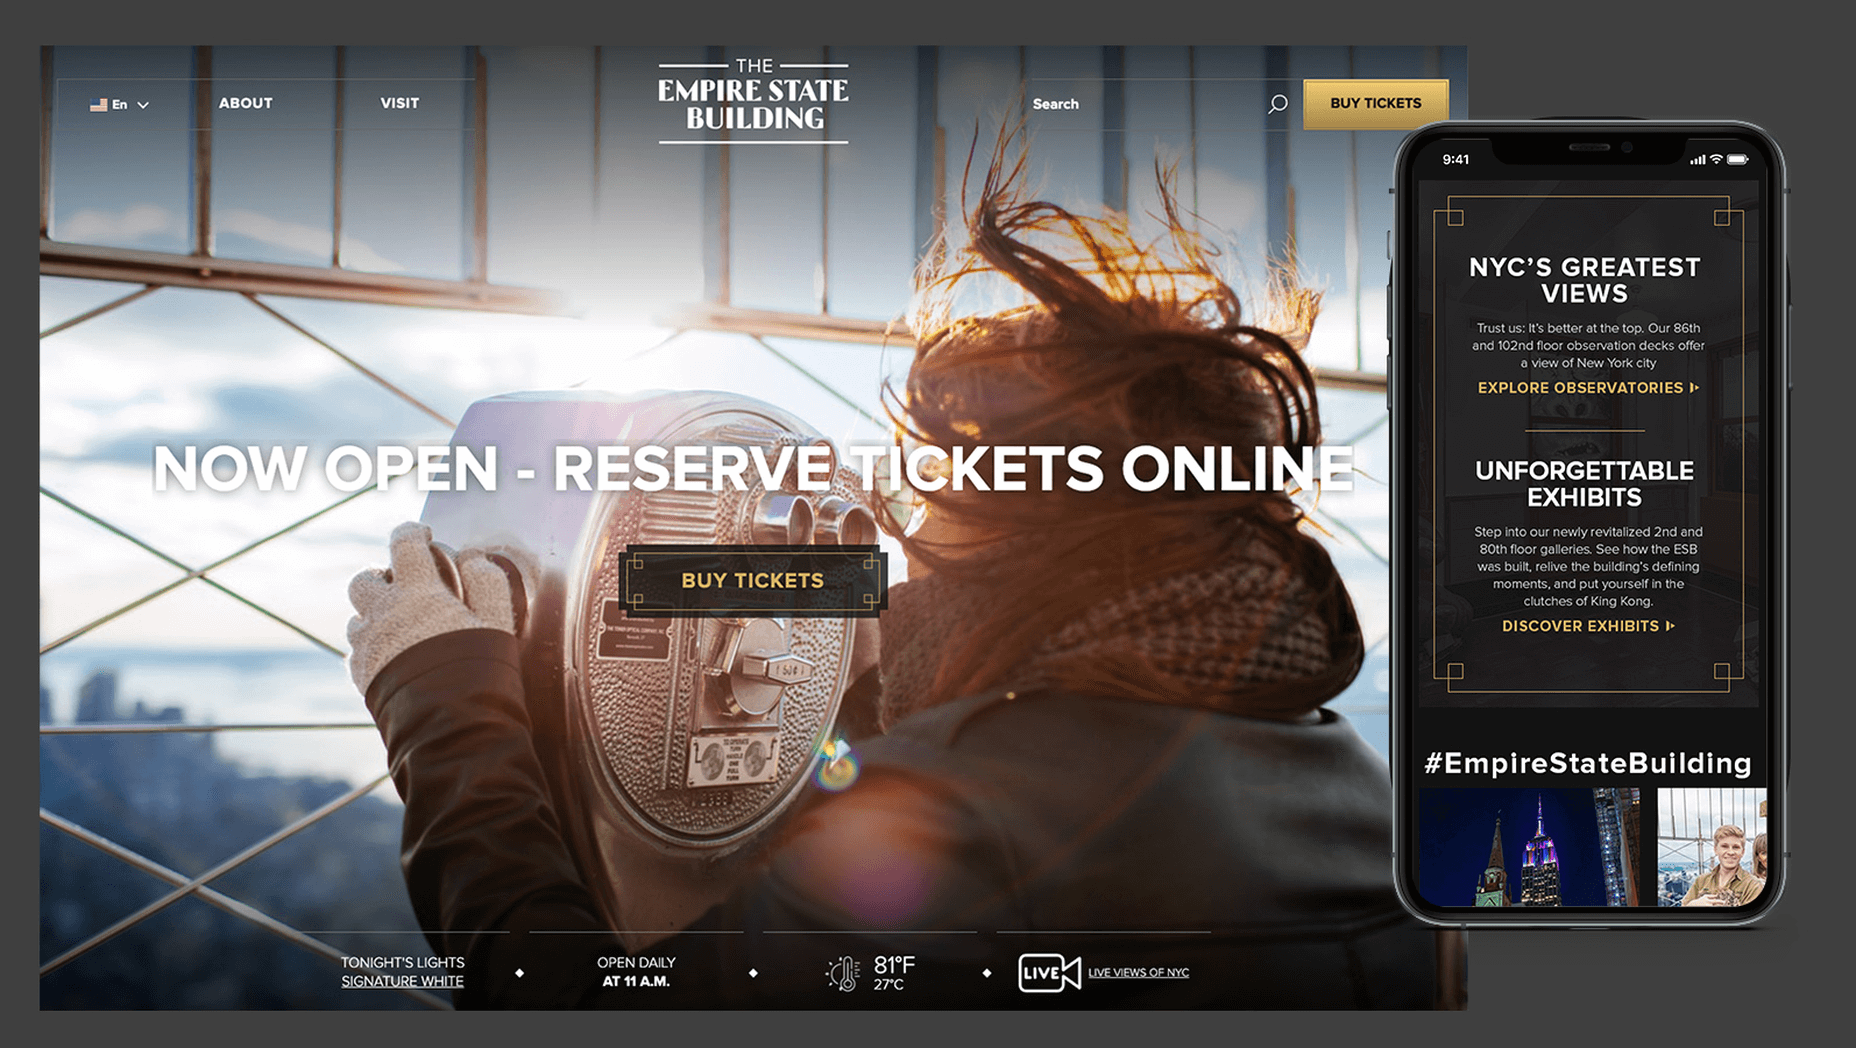 Empire State Building Website Redesign